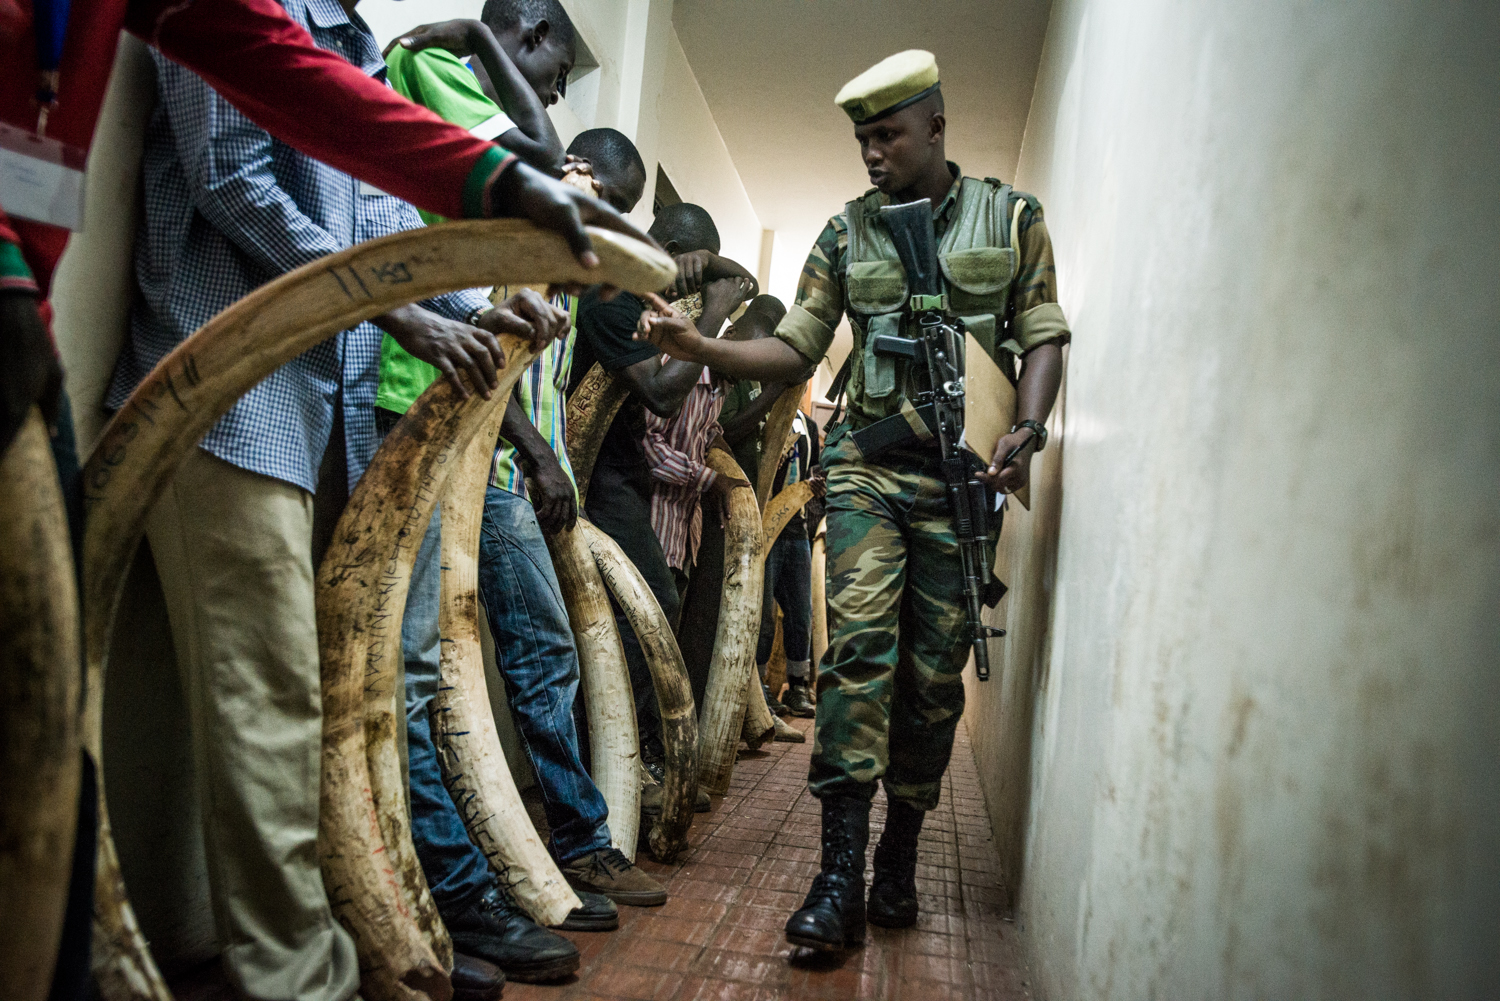 The elephant tusks are assessed and cataloged at the Kenya Wildlife Service. Photo by Mia Collis for the Kenya Wildlife Service